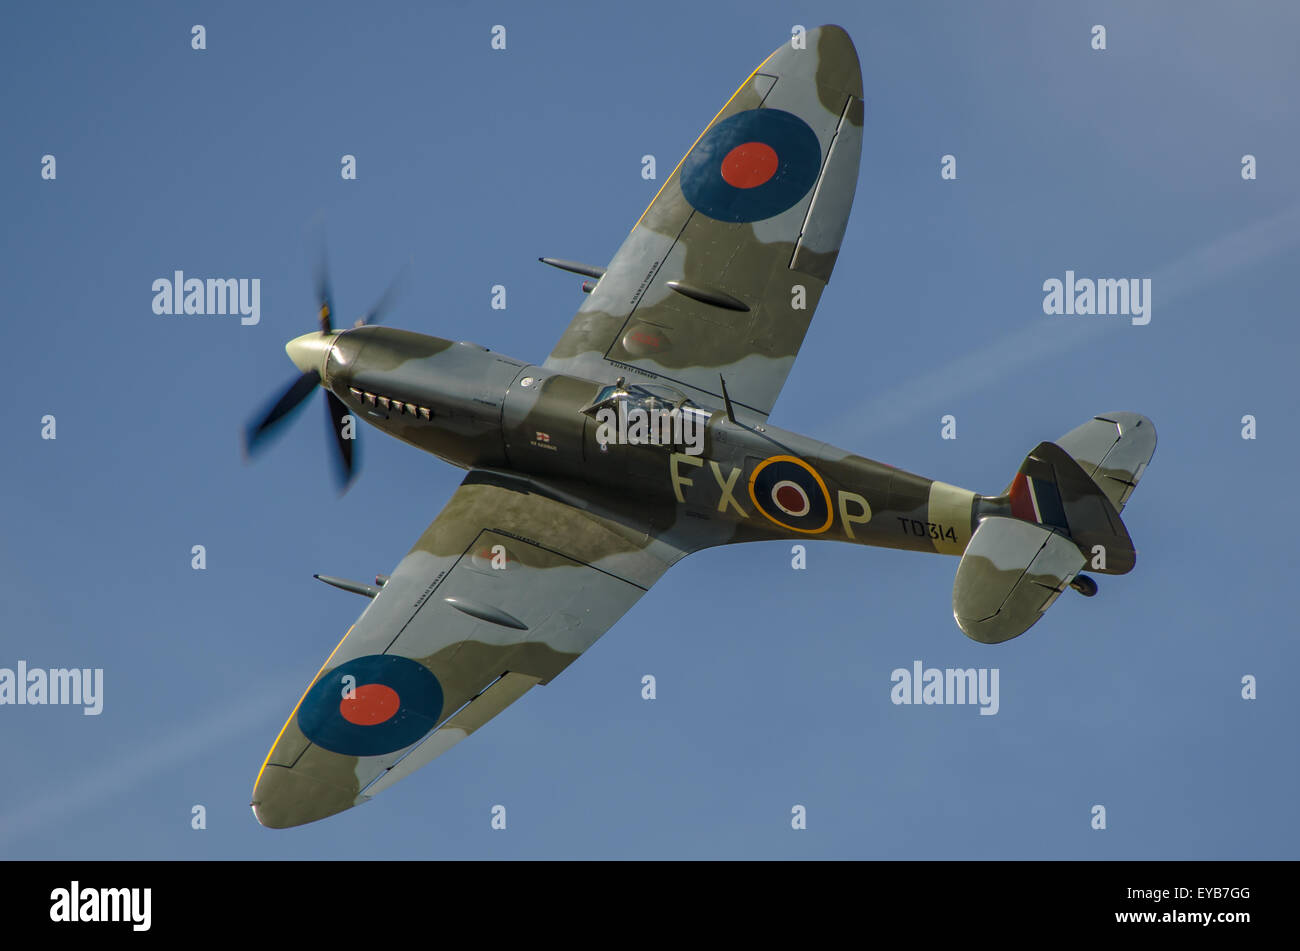 spitfire-td314-is-a-mark-ix-supermarine-spitfire-plane-operated-by-EYB7GG.jpg